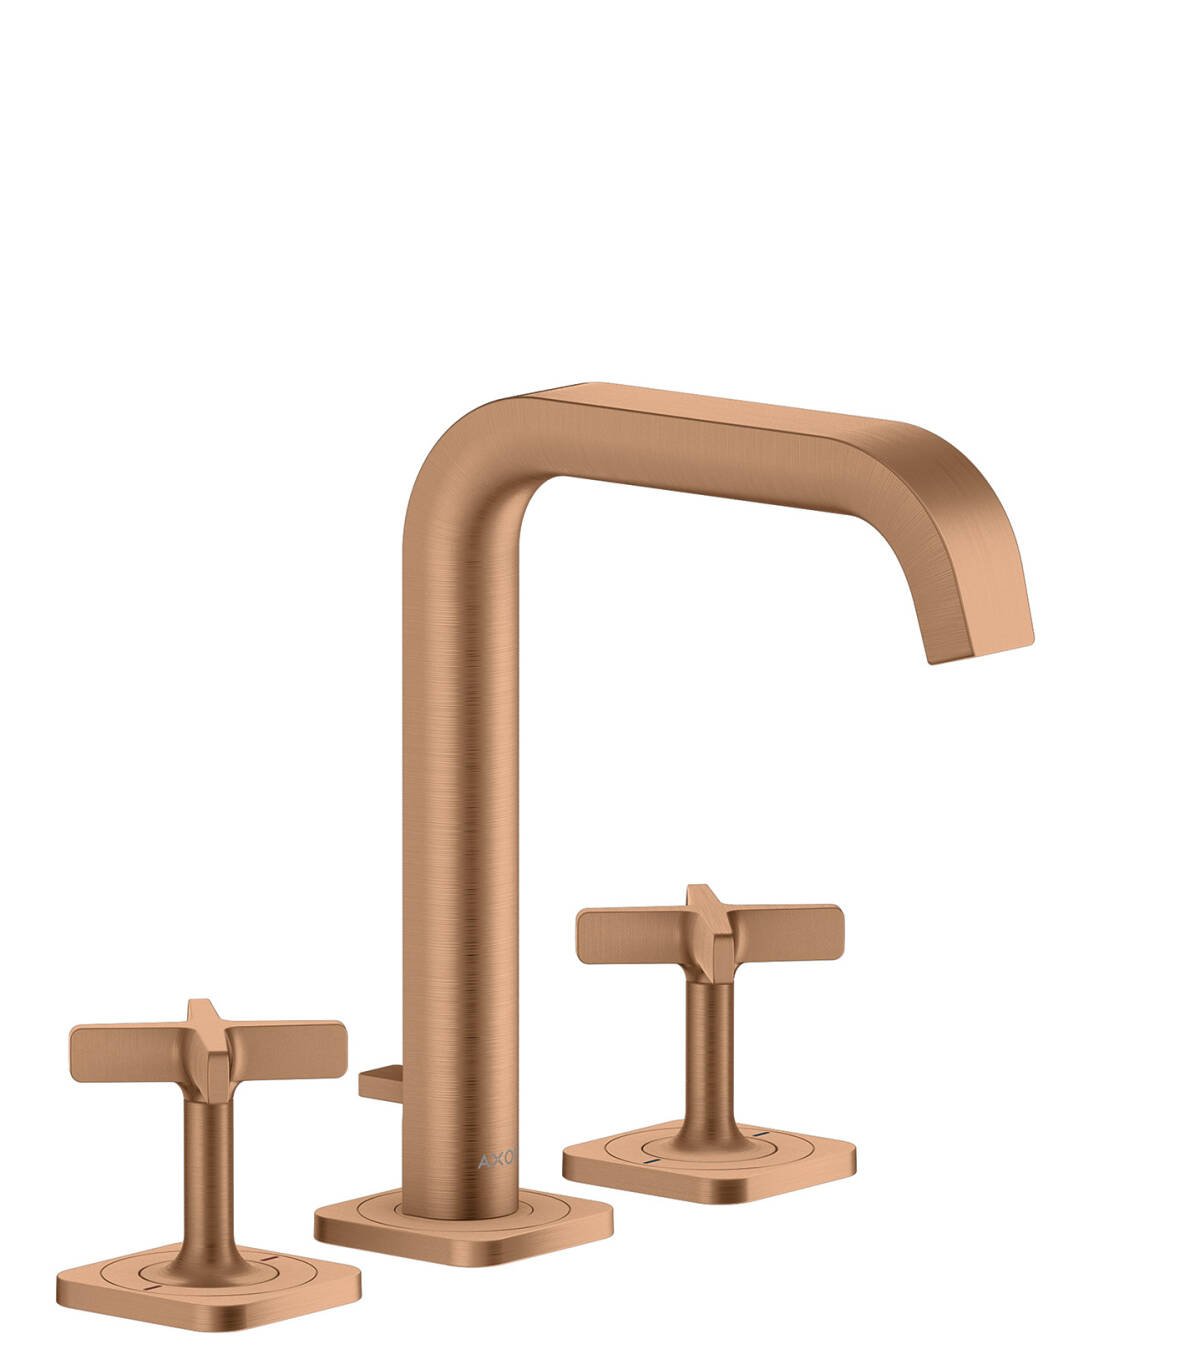 3-hole basin mixer 170 with escutcheons and pop-up waste set, Brushed Bronze, 36108140